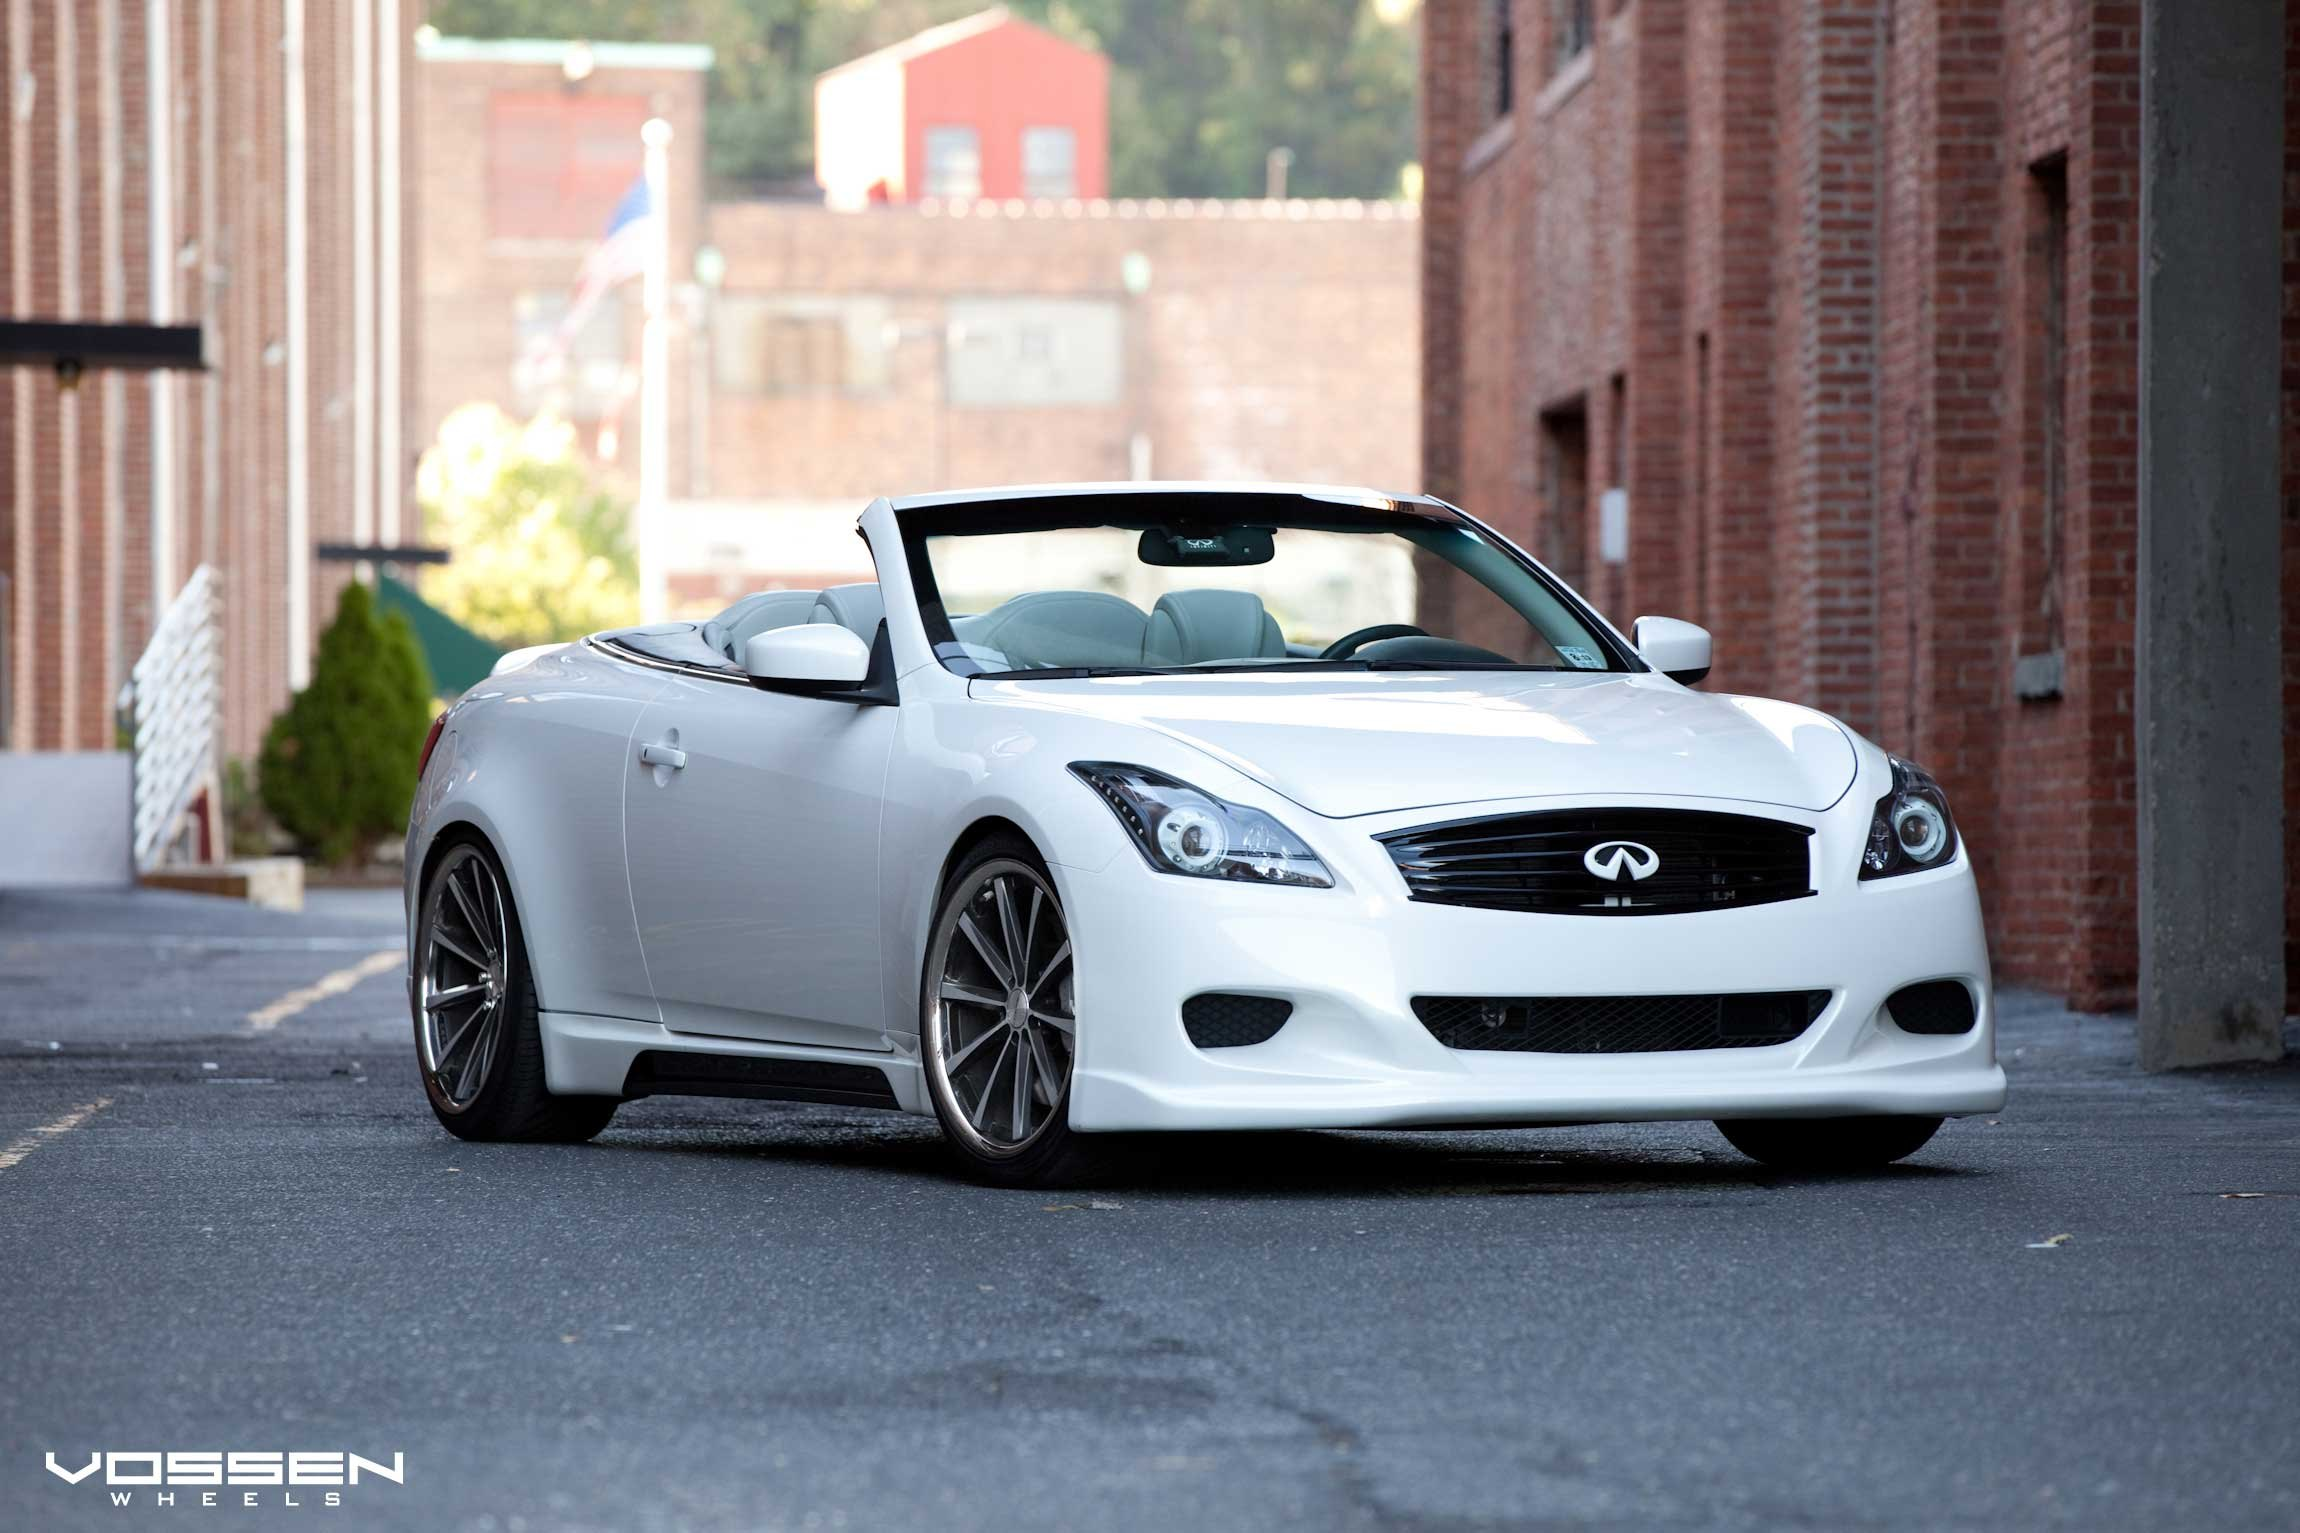 production will to infinity early enter performance news photos infiniti in convertible get version